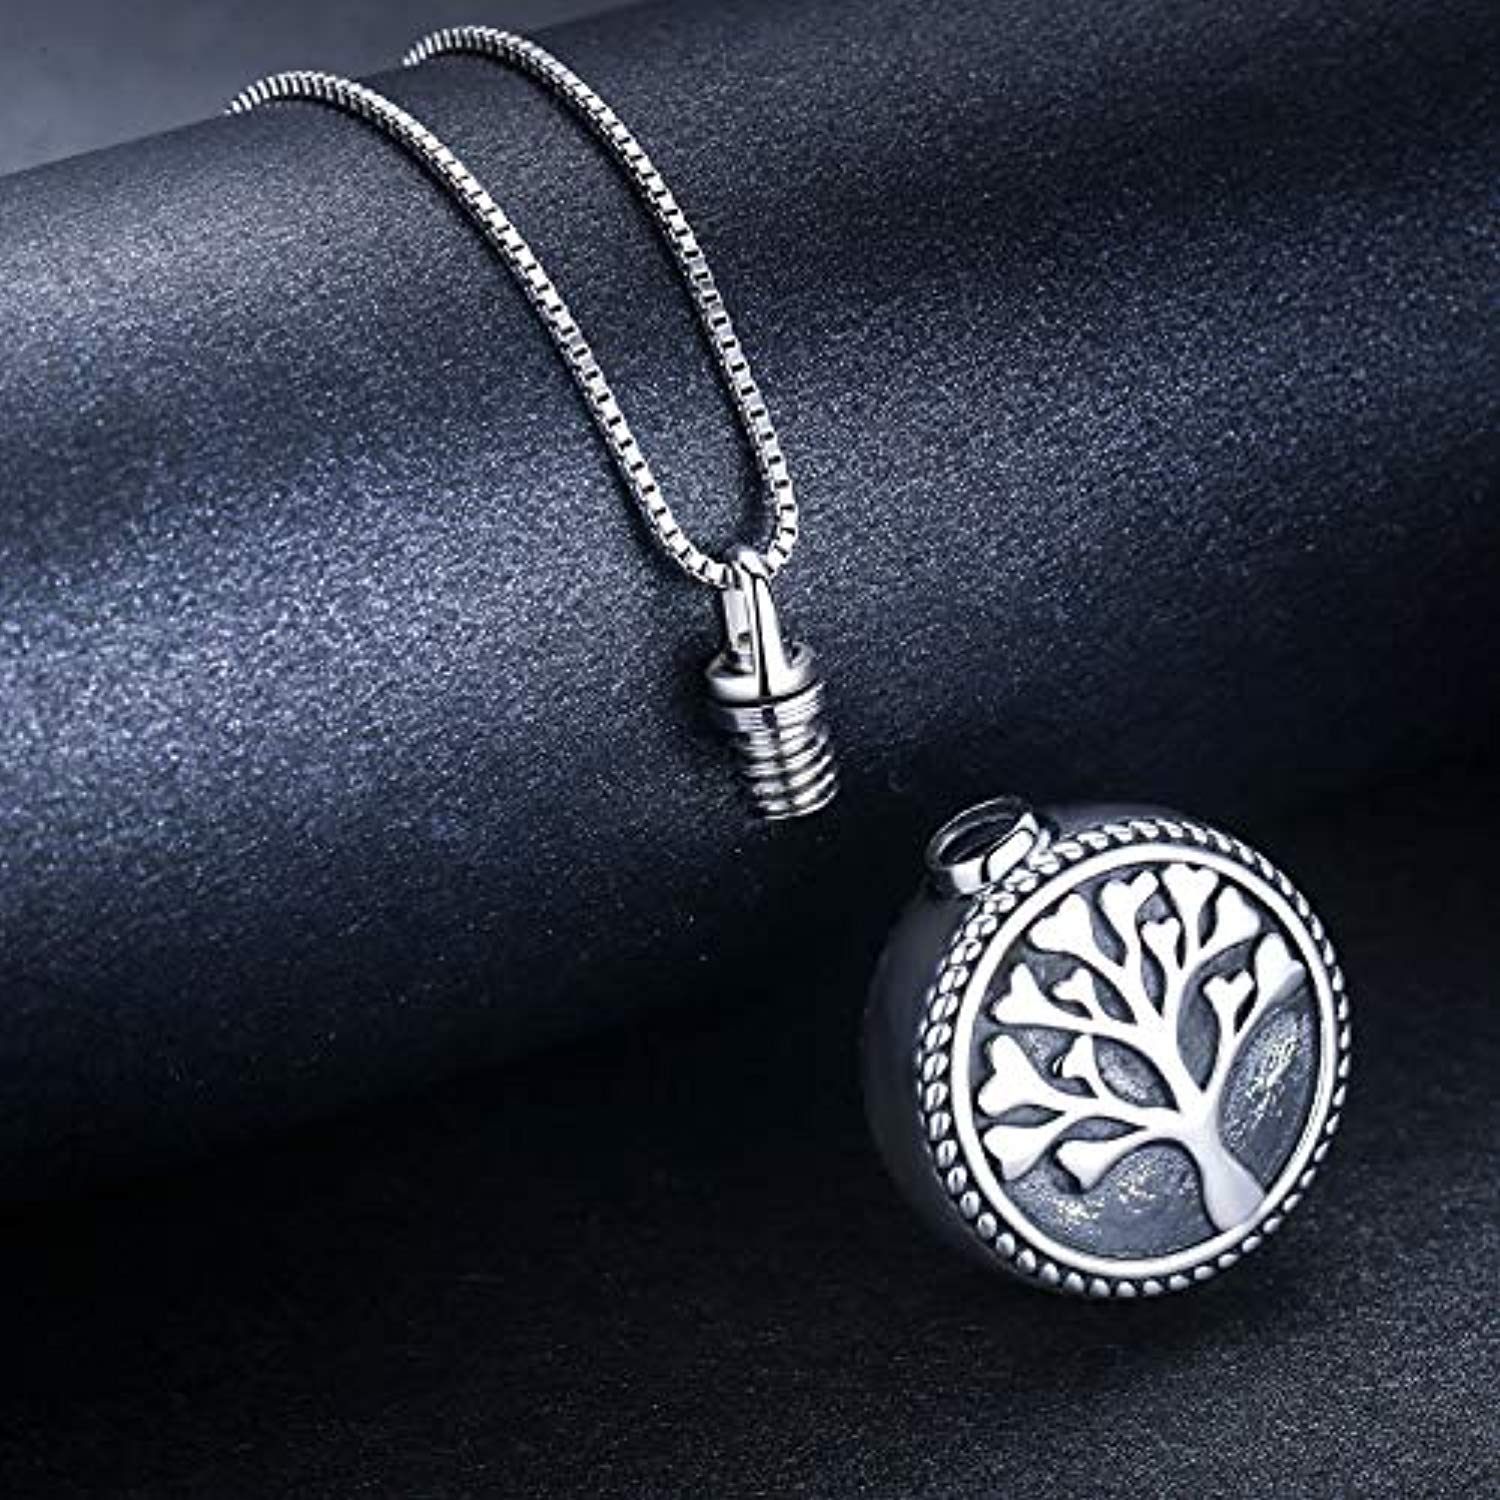 925 Sterling Silver Urn Necklace for Ashes-Round Cremation Keepsake Pendant Tree of Life Ashes Necklace Jewelry Gifts for Men Women